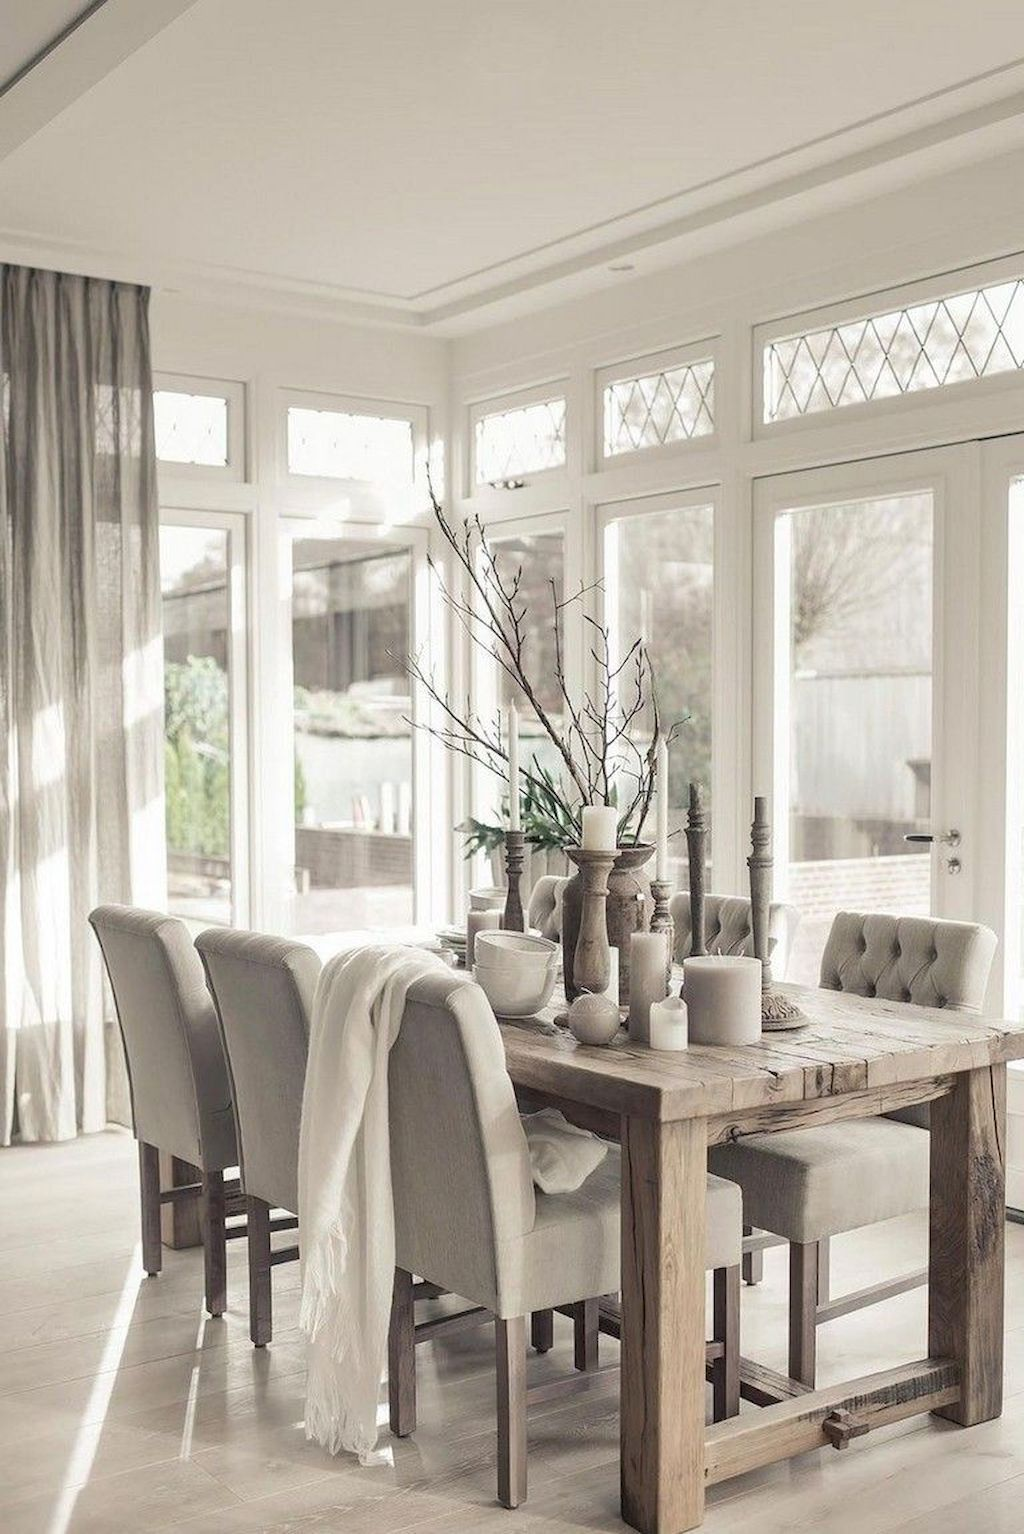 75 Modern Farmhouse Dining Room Decor Ideas Homespecially In